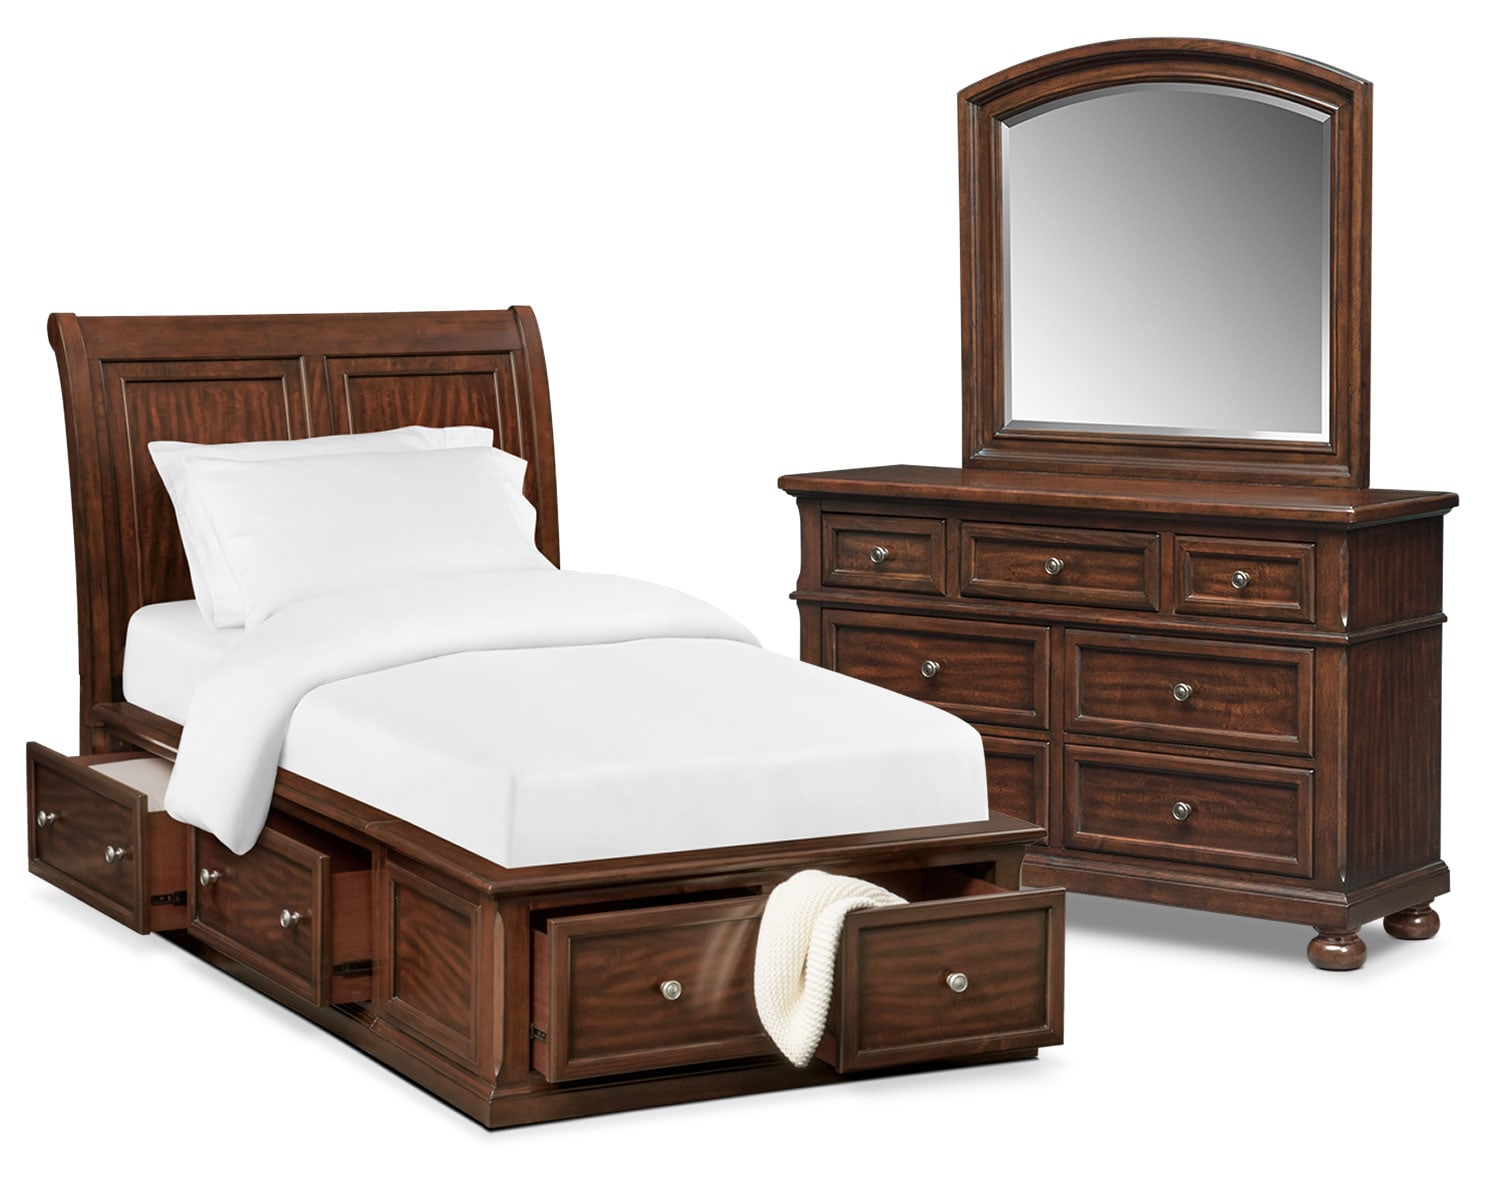 Bedroom Furniture - Hanover Youth 5-Piece Twin Sleigh Bedroom Set with Storage - Cherry